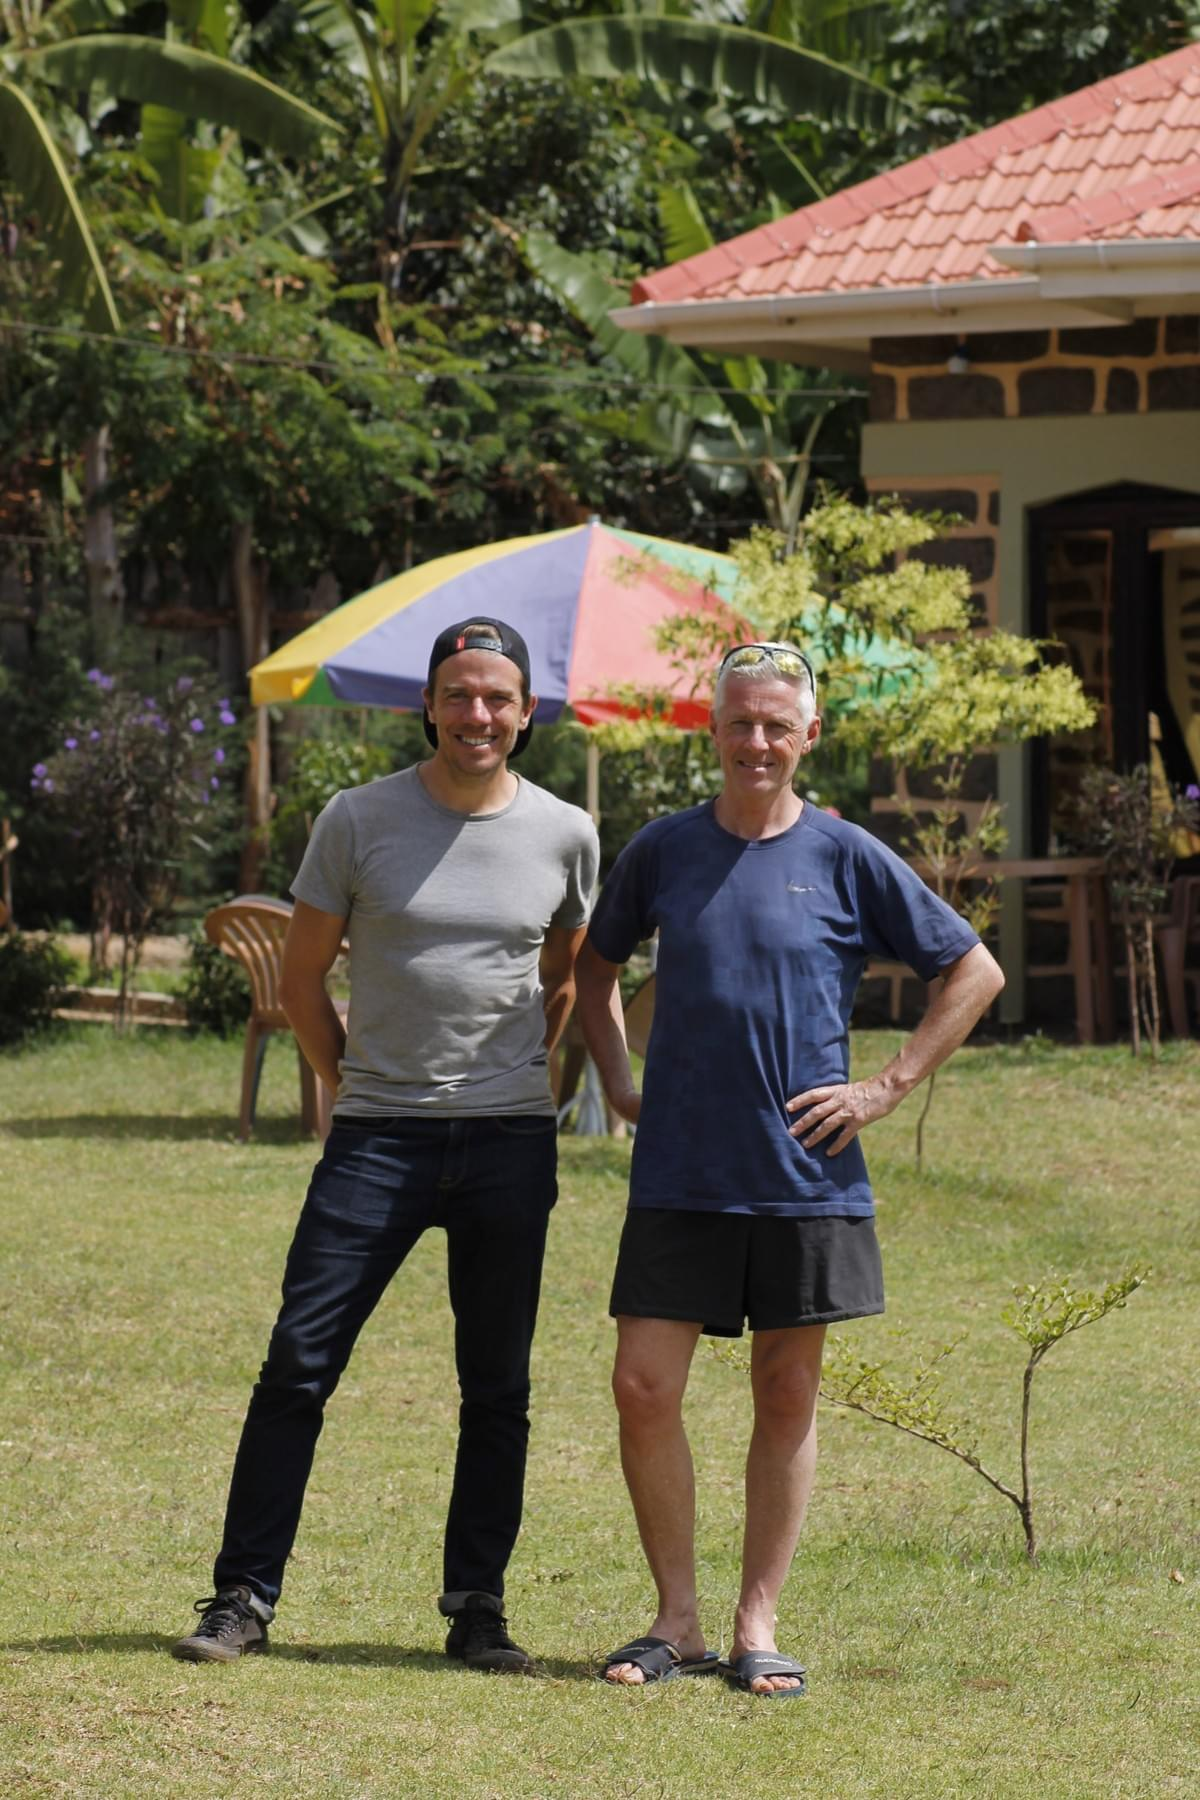 Mark from Adventures in Running and Addy Ruiter standing in a garden in Kapchorwa, Uganda